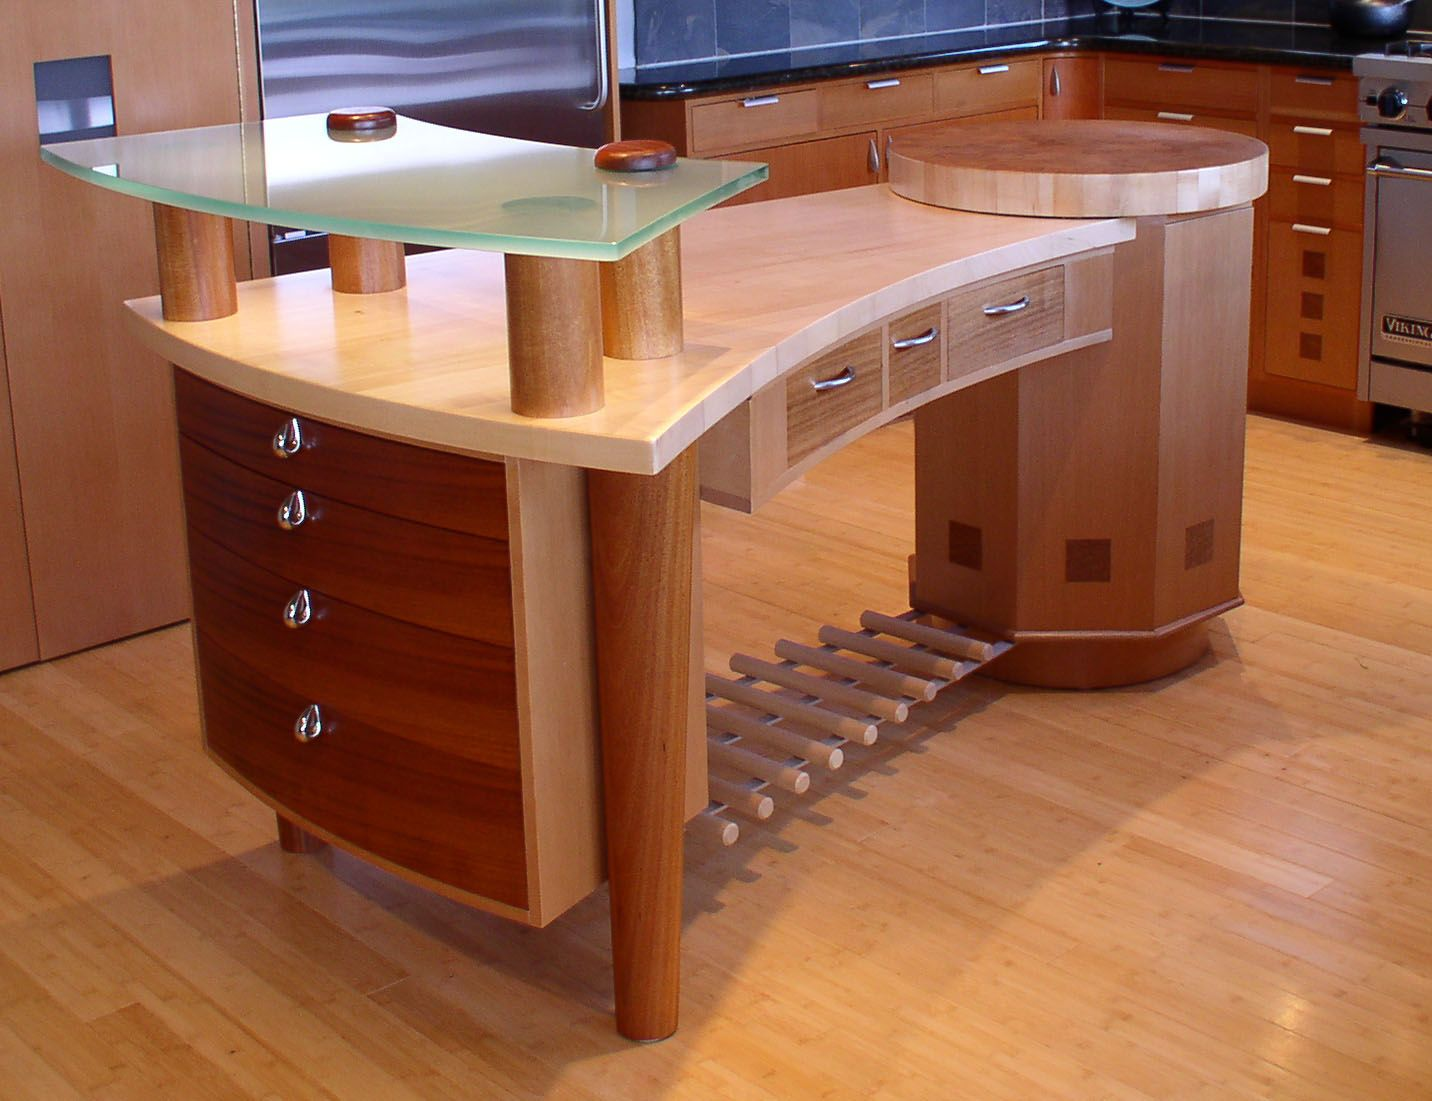 furniture wood design. woodworkers table designs michael singer fine woodworking offers individualized custom design furniture wood